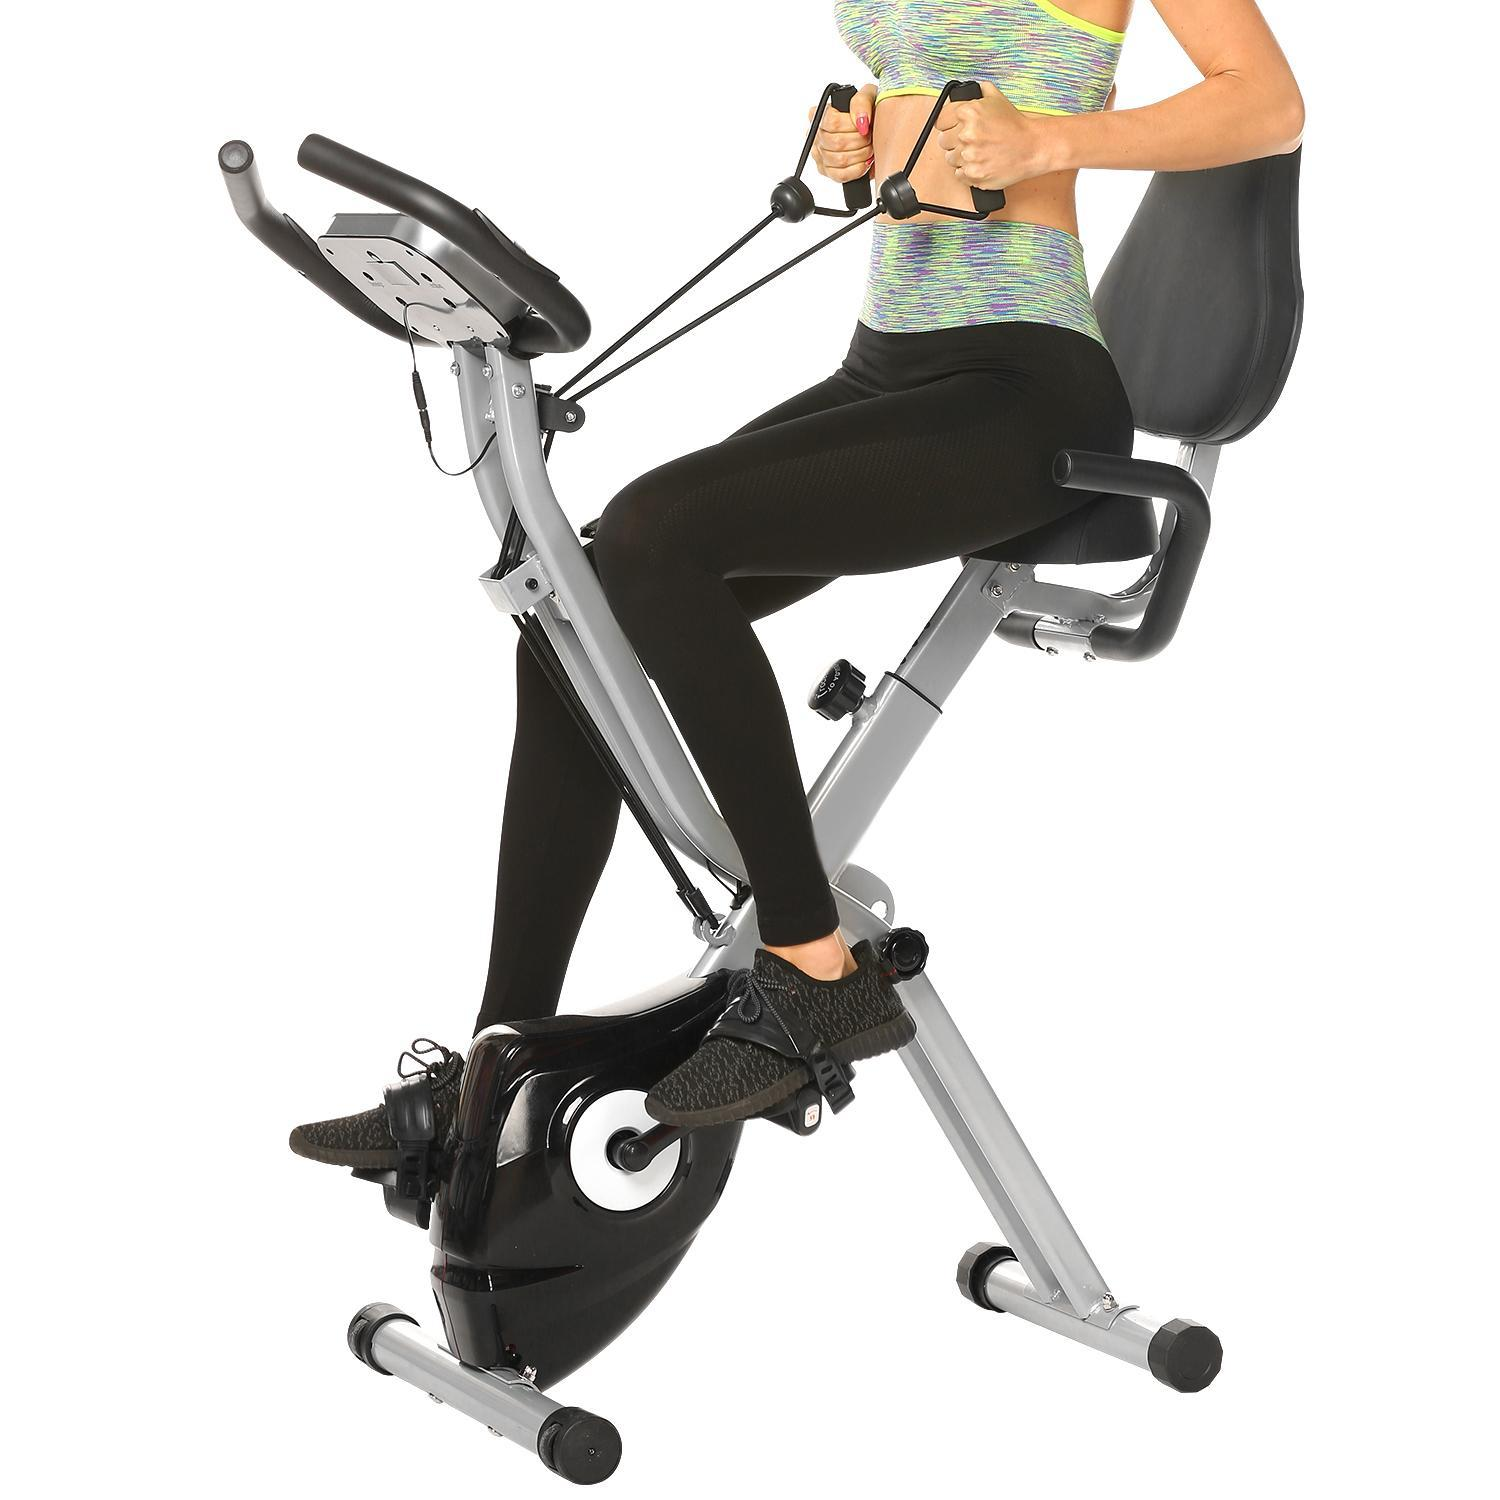 Folding 10 Levels Magnetic Resistance Upright Exercise Bike